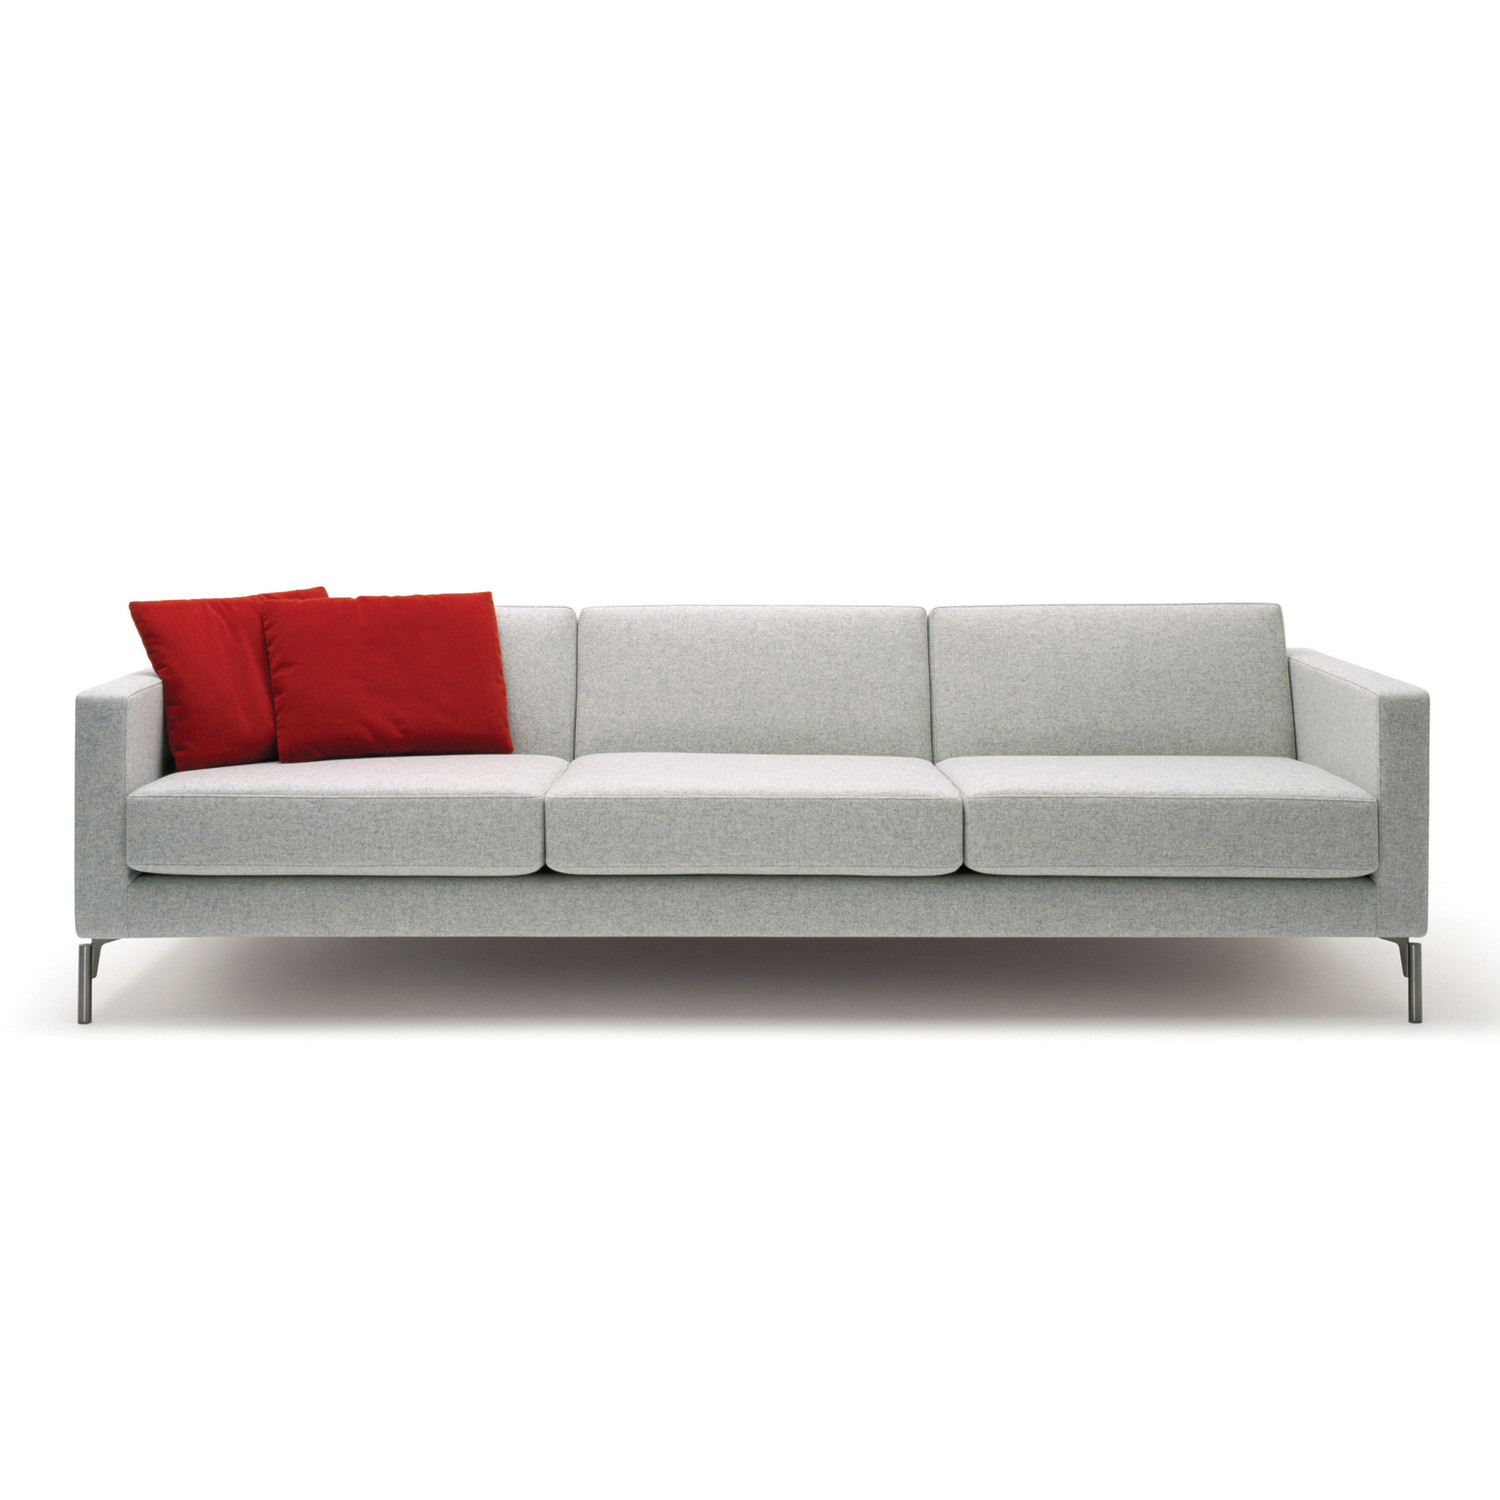 HM34 Reception Sofa